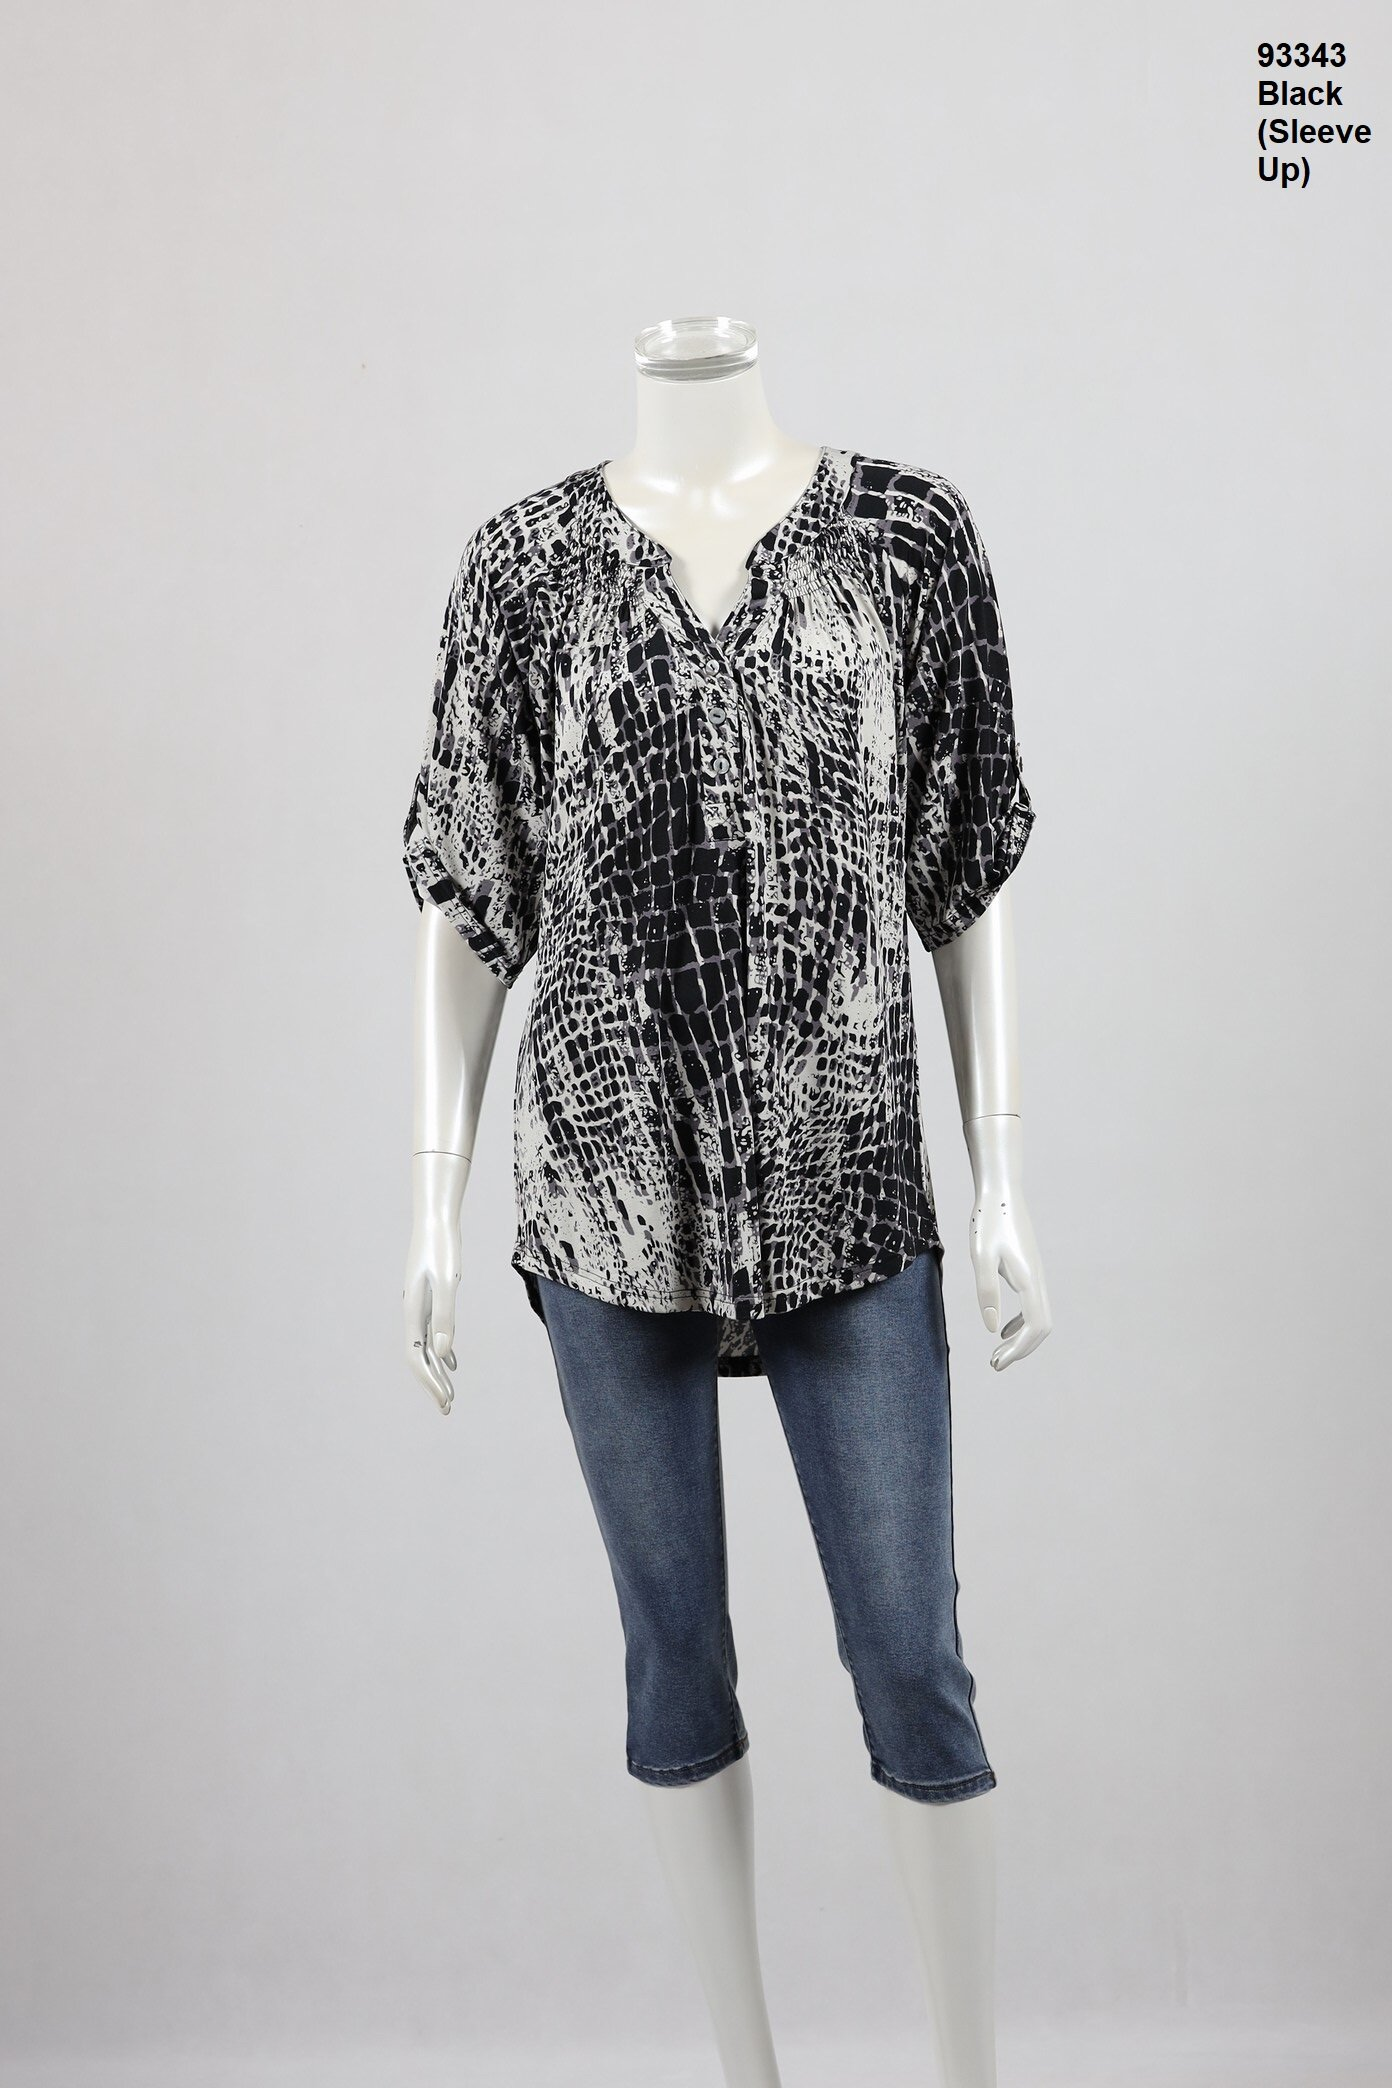 93343-Black-With Sleeve Button Up.JPG